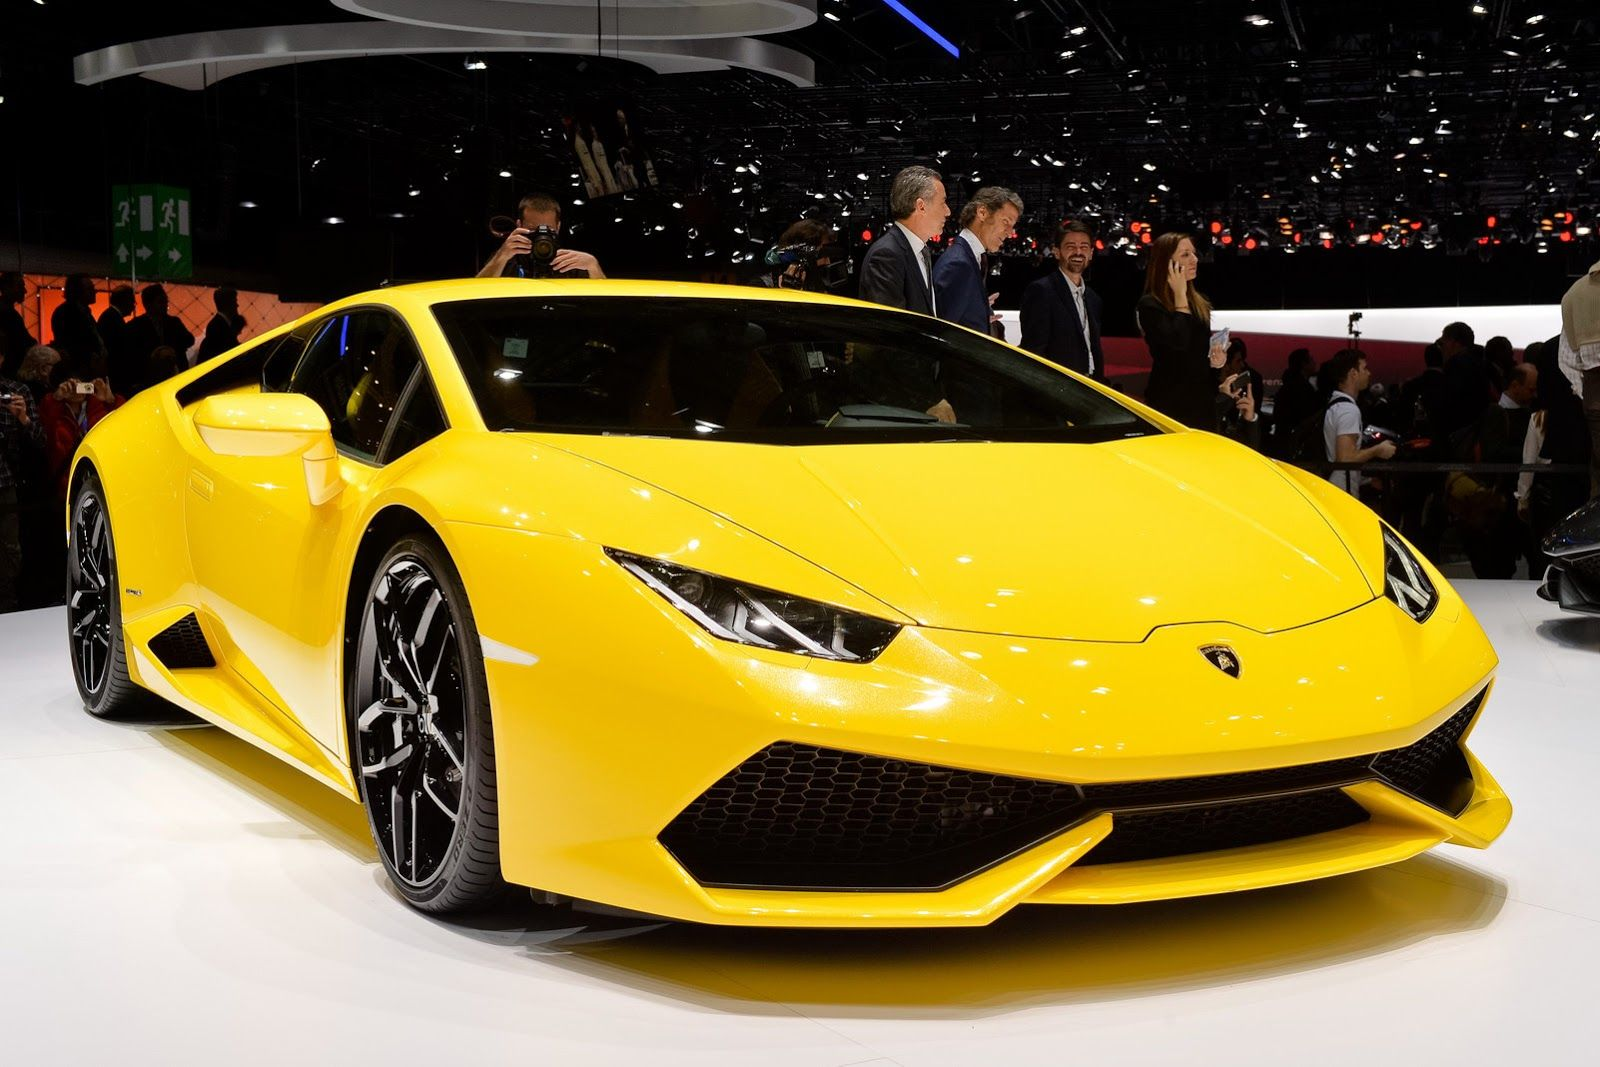 Lamborghini Makes Its Huracan Lp610 4 Official In Geneva 48 Photos Videos Carscoops Lamborghini Huracan Sports Cars Lamborghini 2015 Lamborghini Huracan